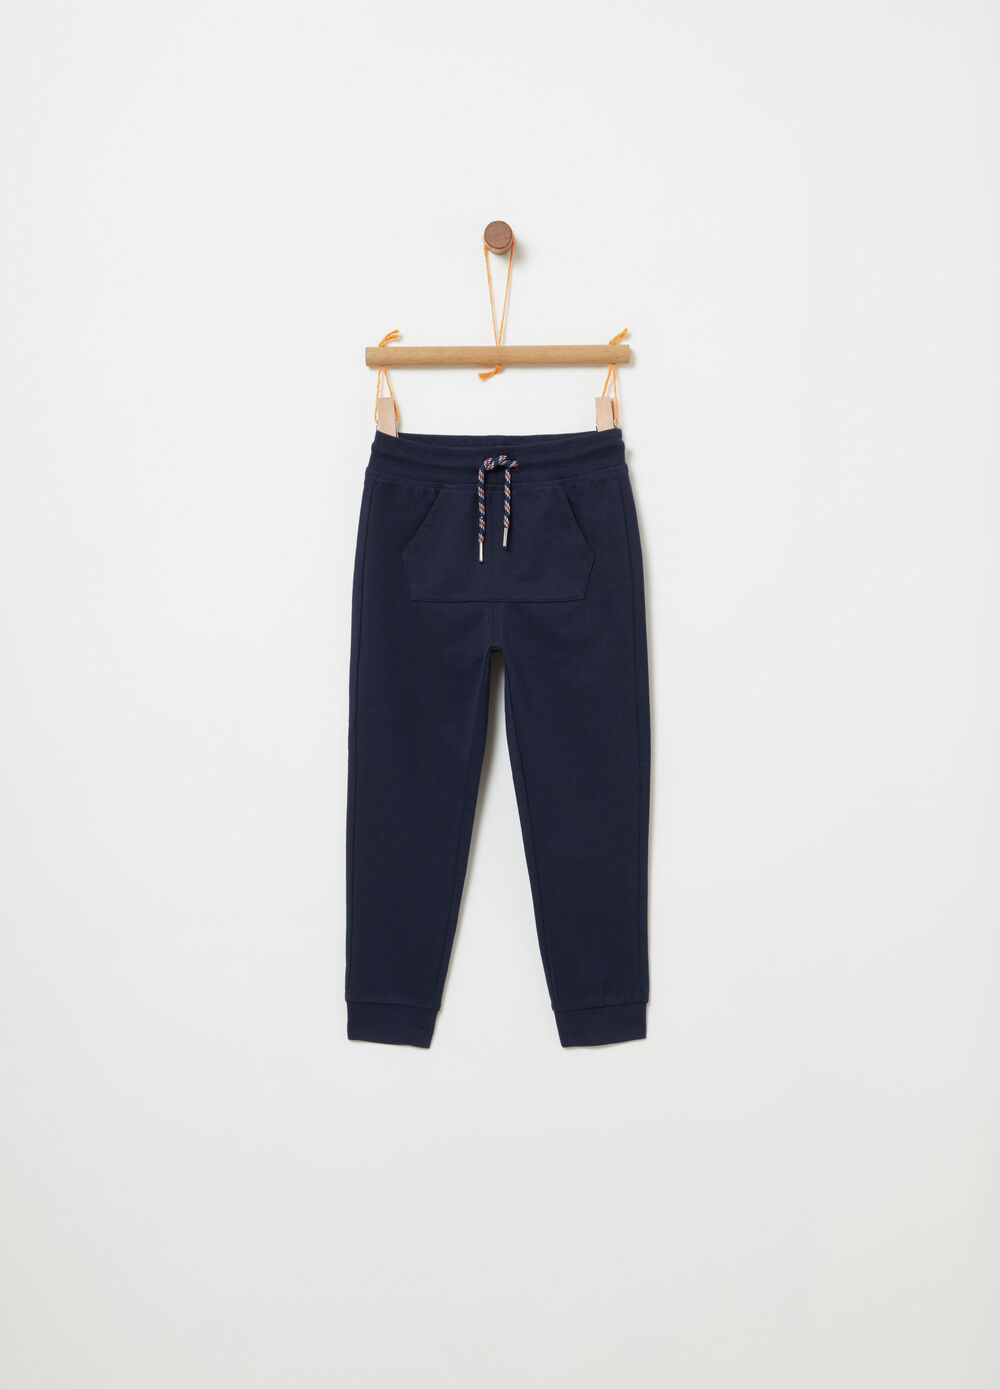 BCI cotton fleece trousers with pocket